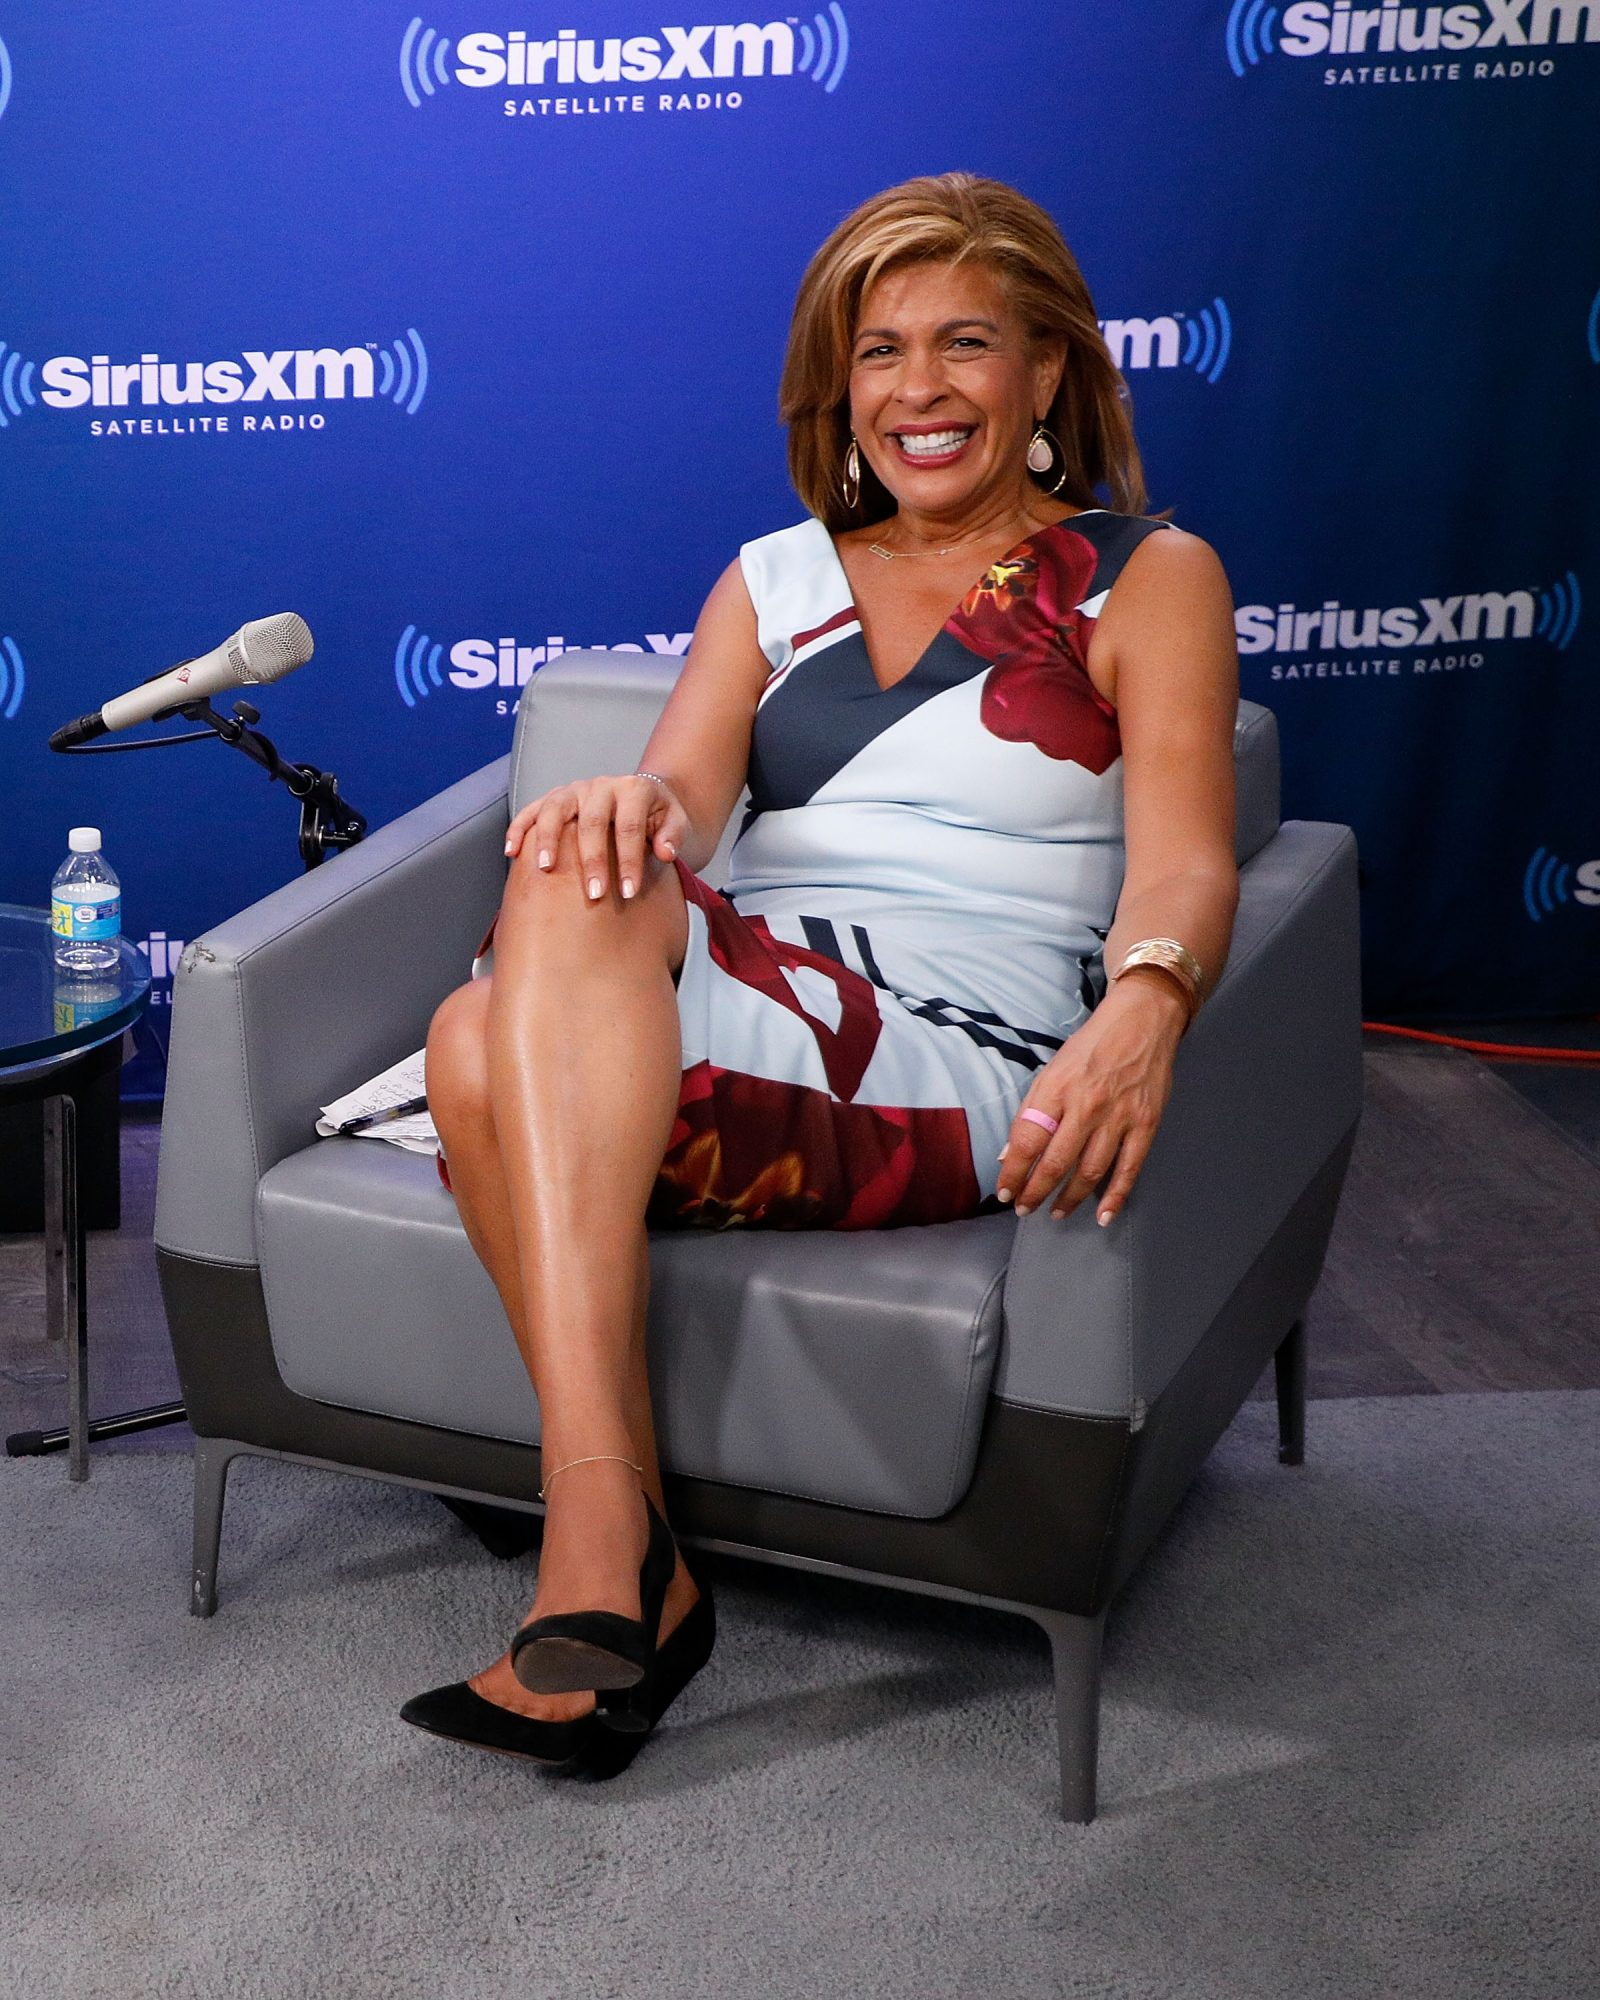 Hoda Kotb (diagnosed 2007 at age 42)